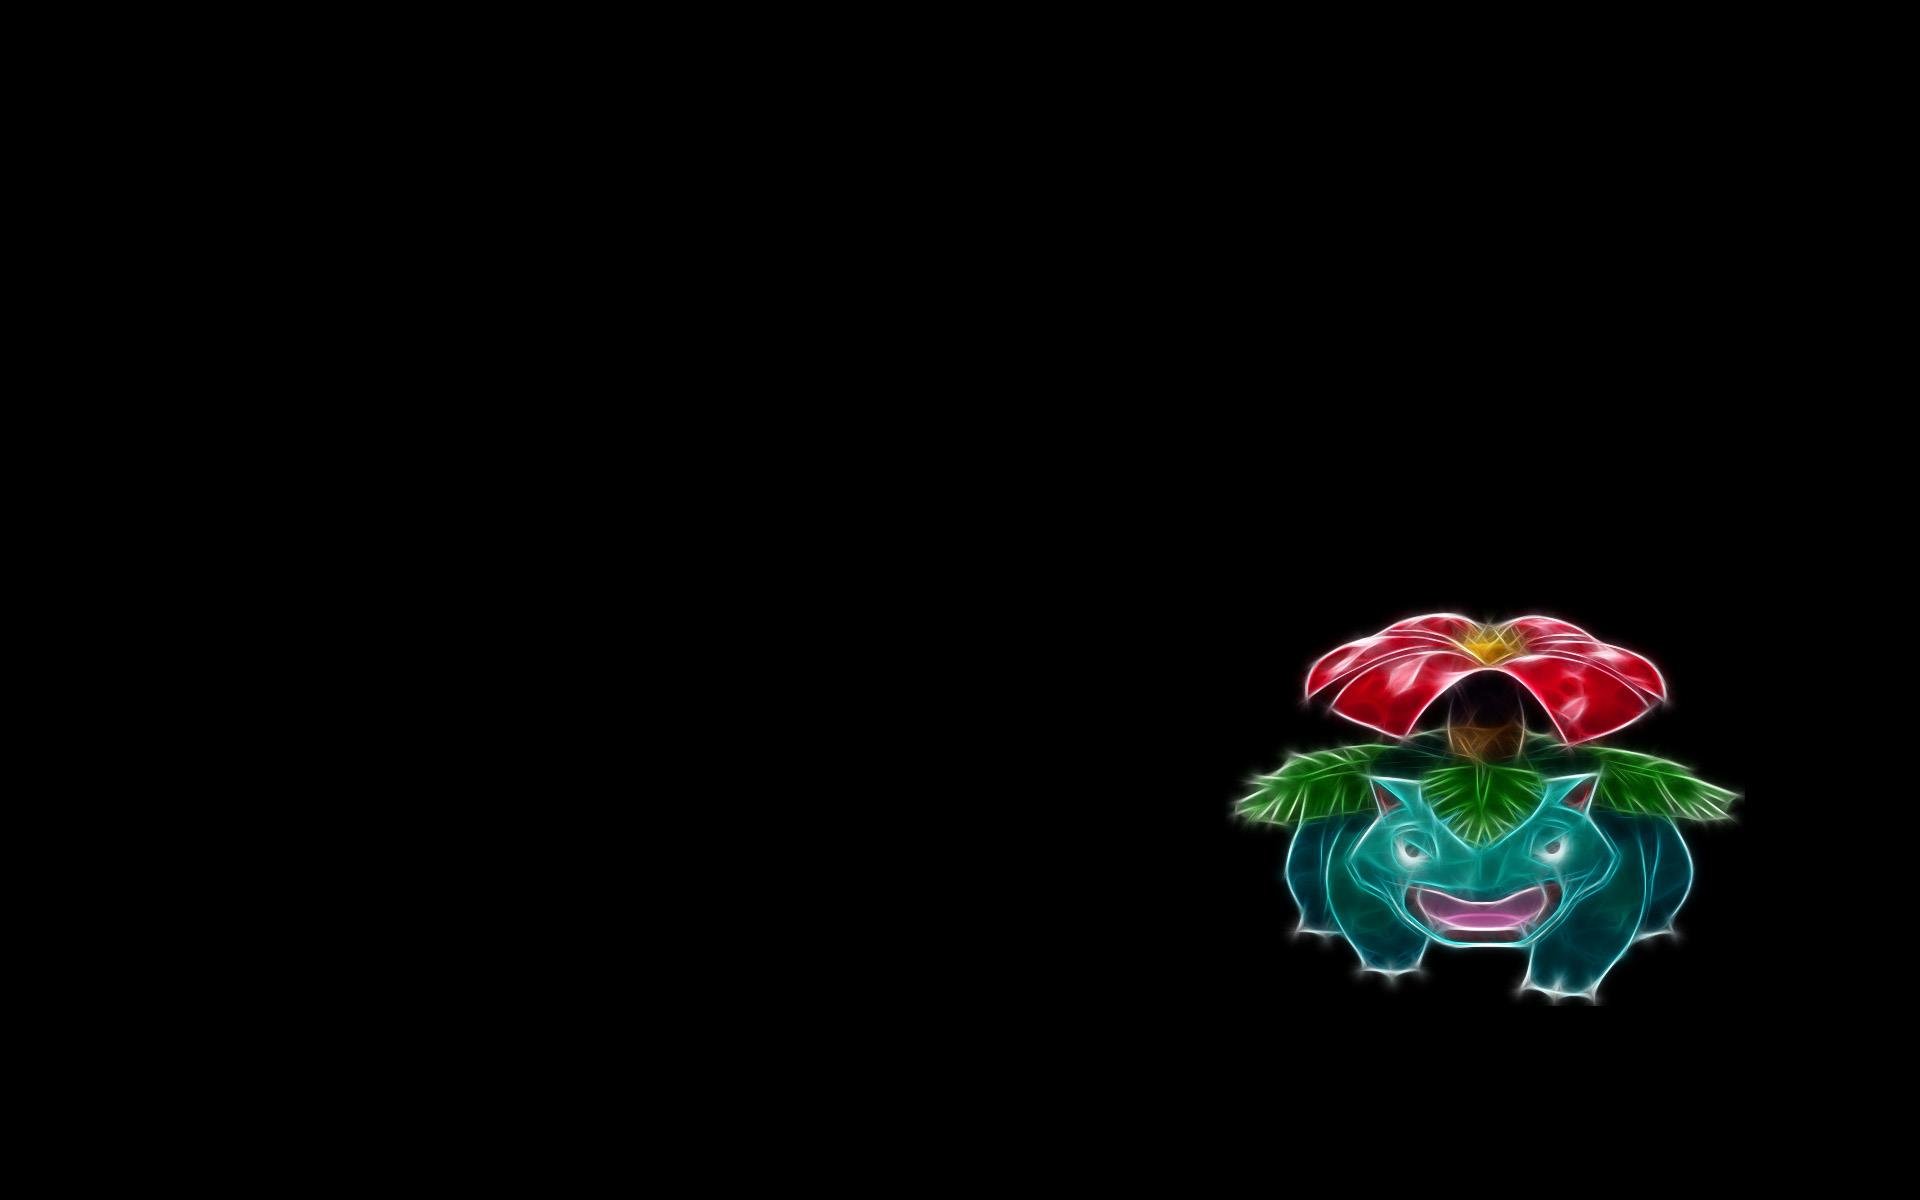 venusaur-pokemon-wallpaper-free-download